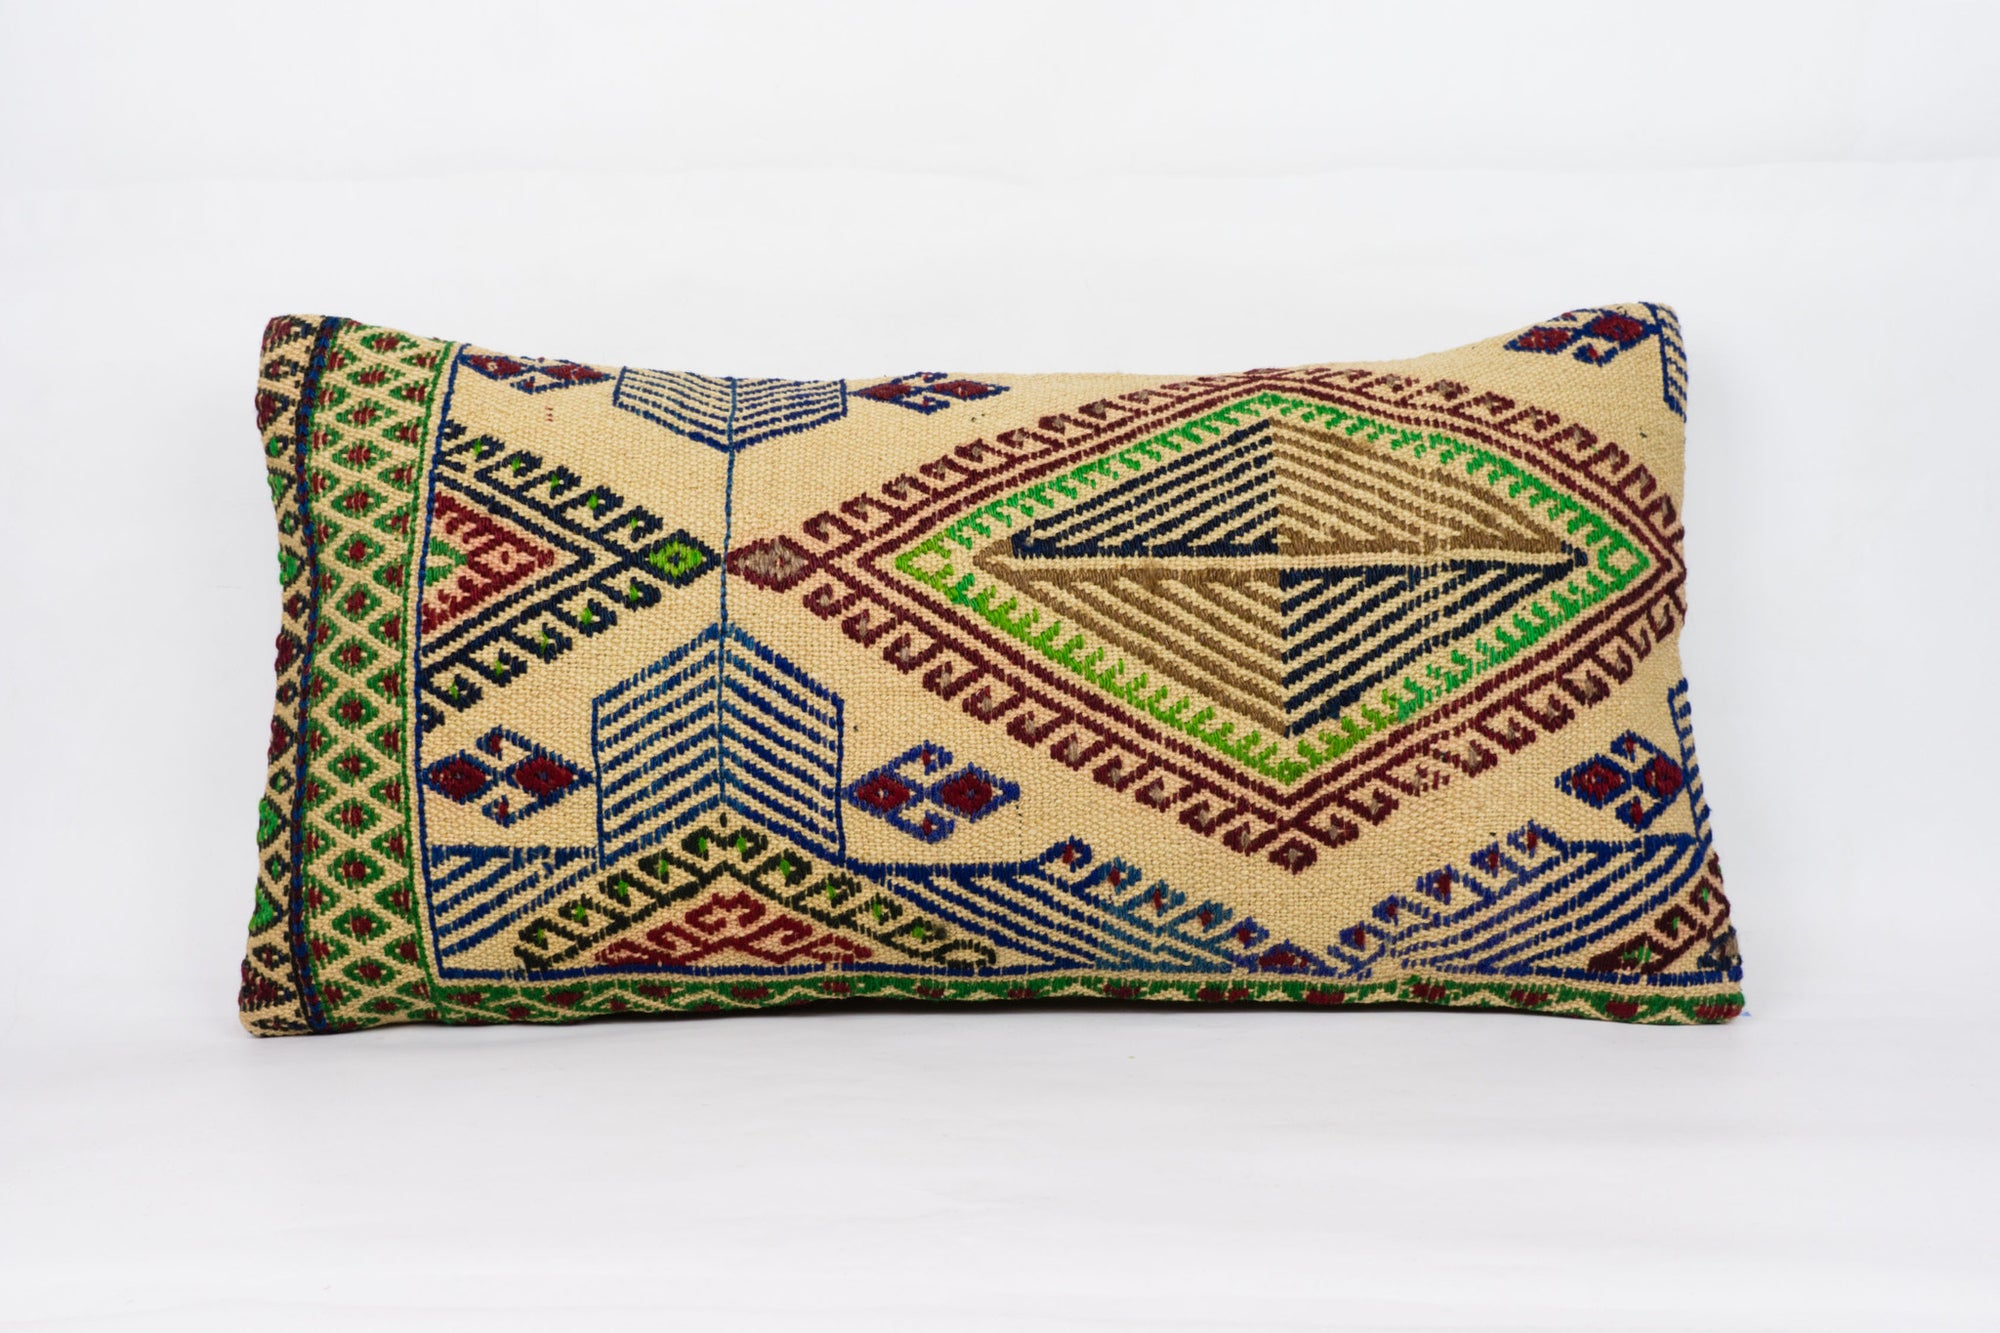 Anatolian Multi Color Kilim Pillow Cover 12x24 4277